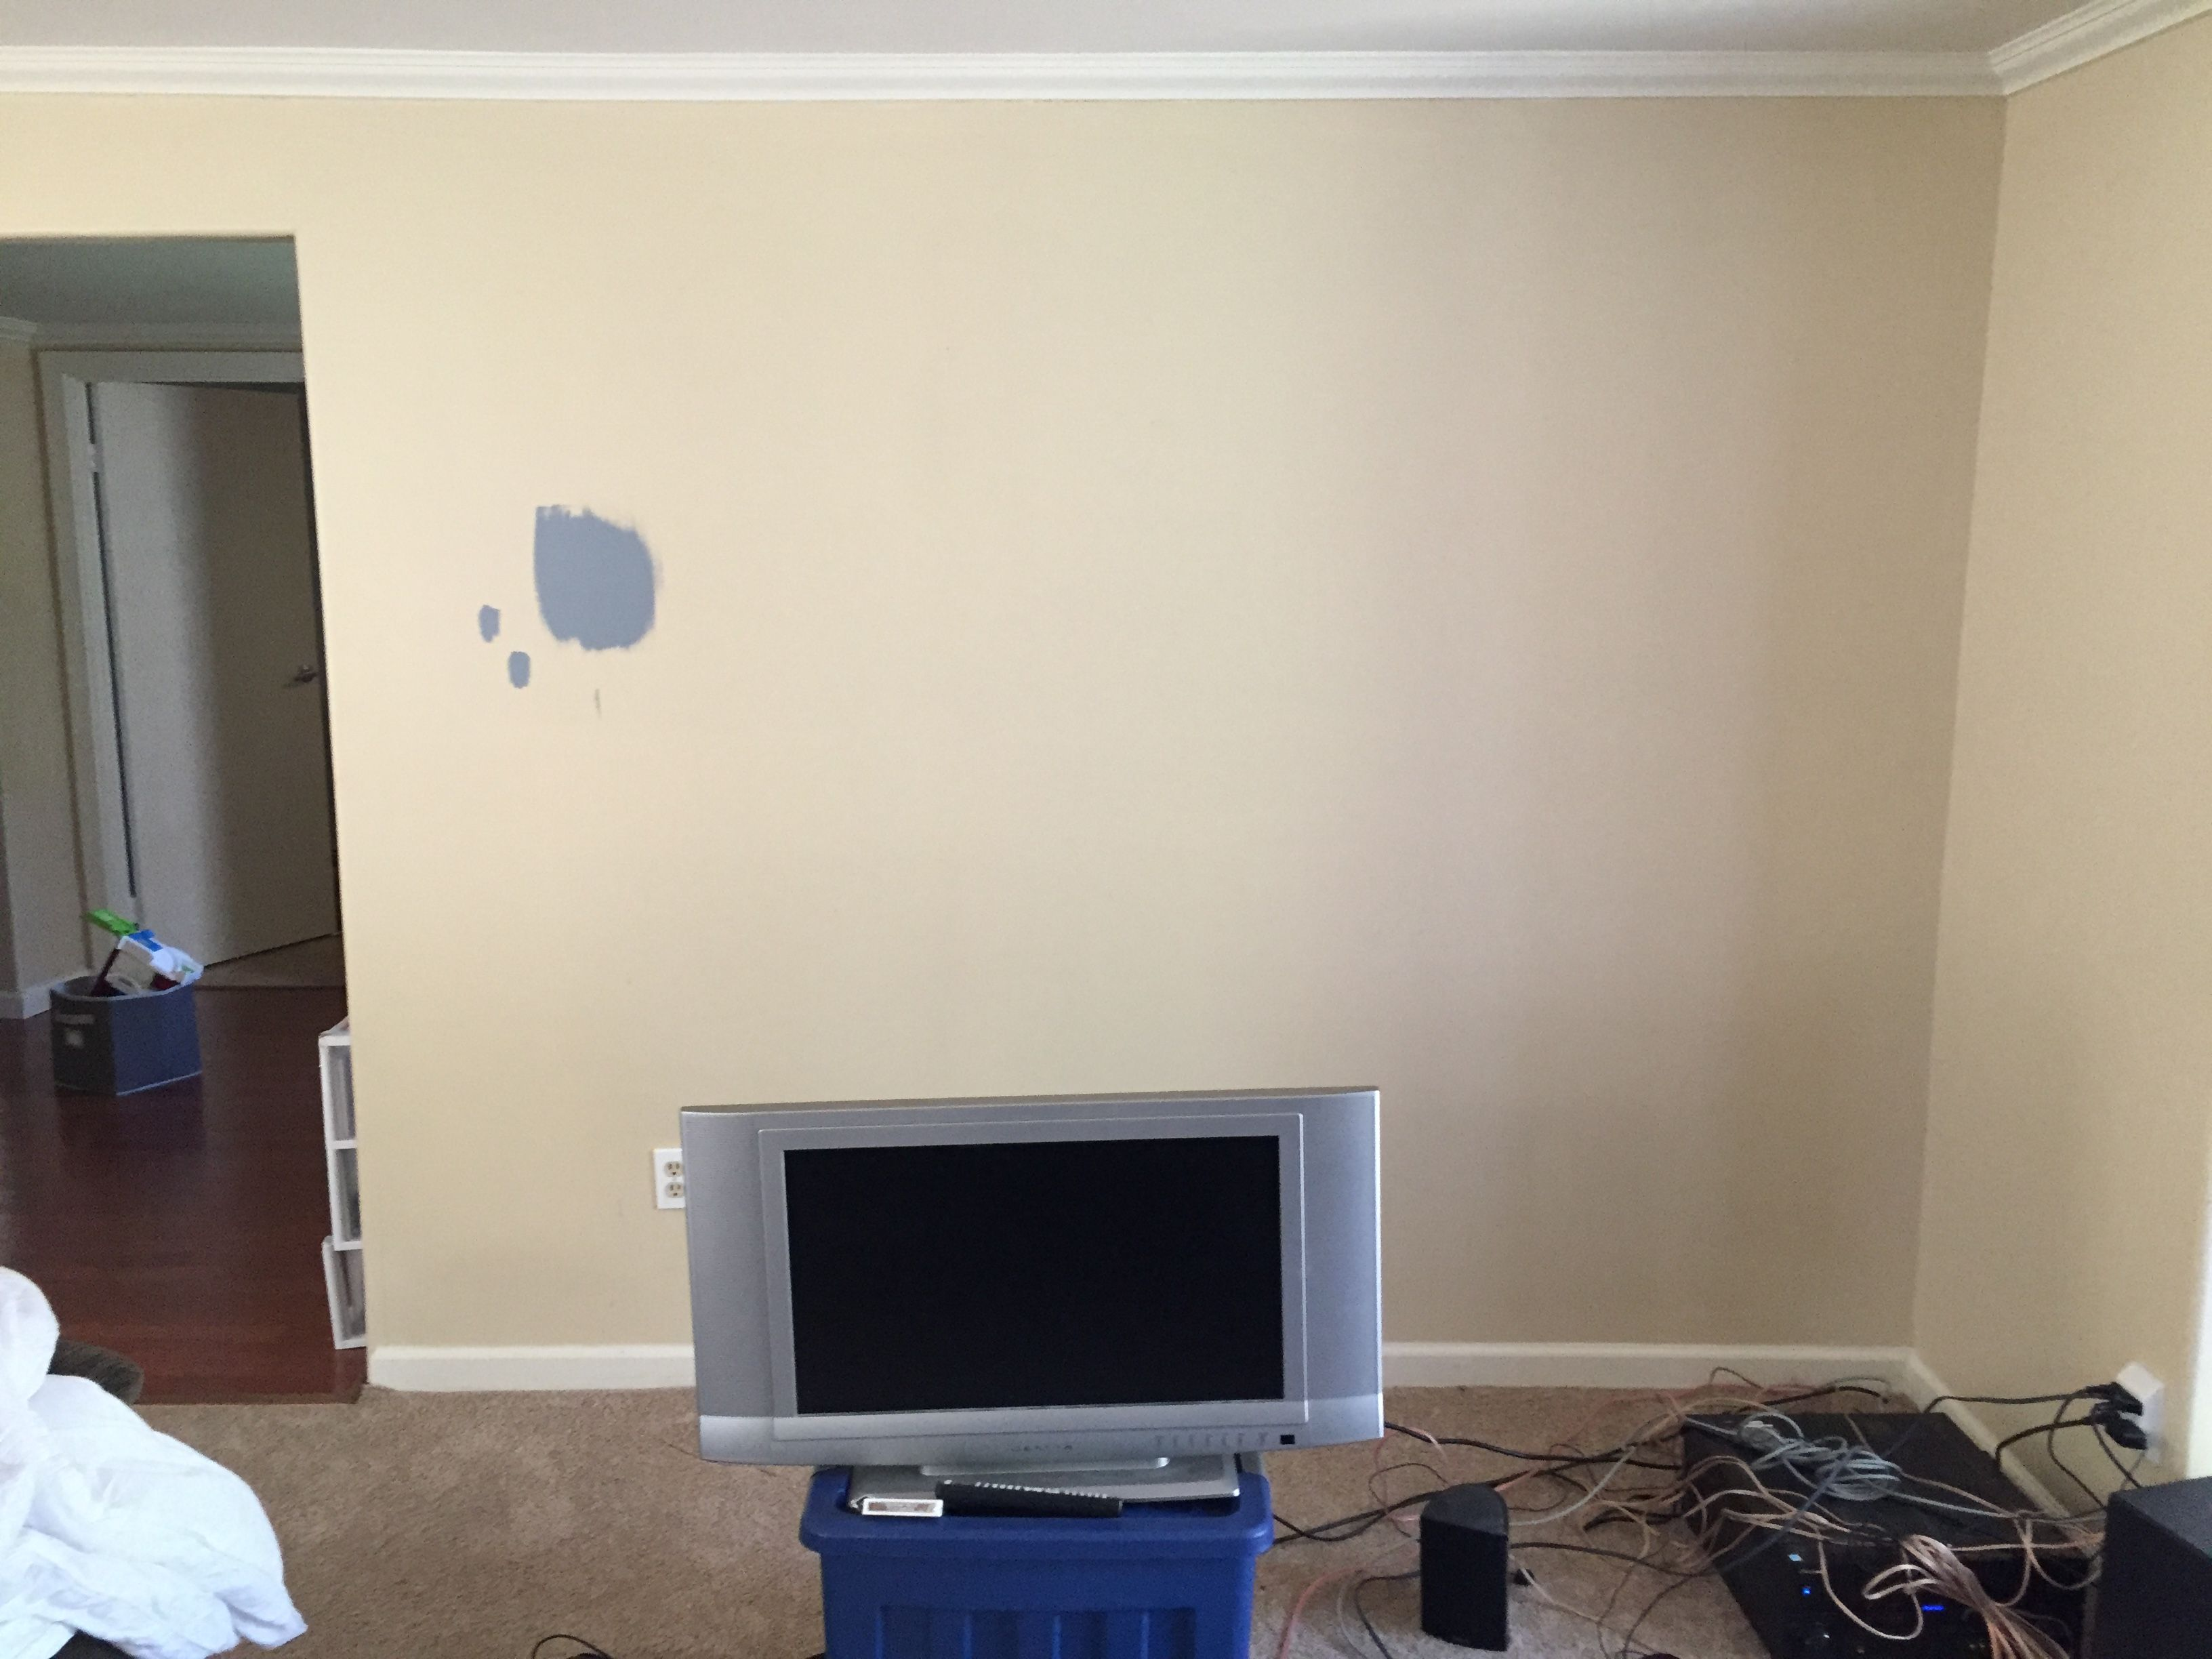 Living Room Setup With Wall Mounted Tv Hidden Wires And 71 Stereo How To Hide Wiring For Surround Sound